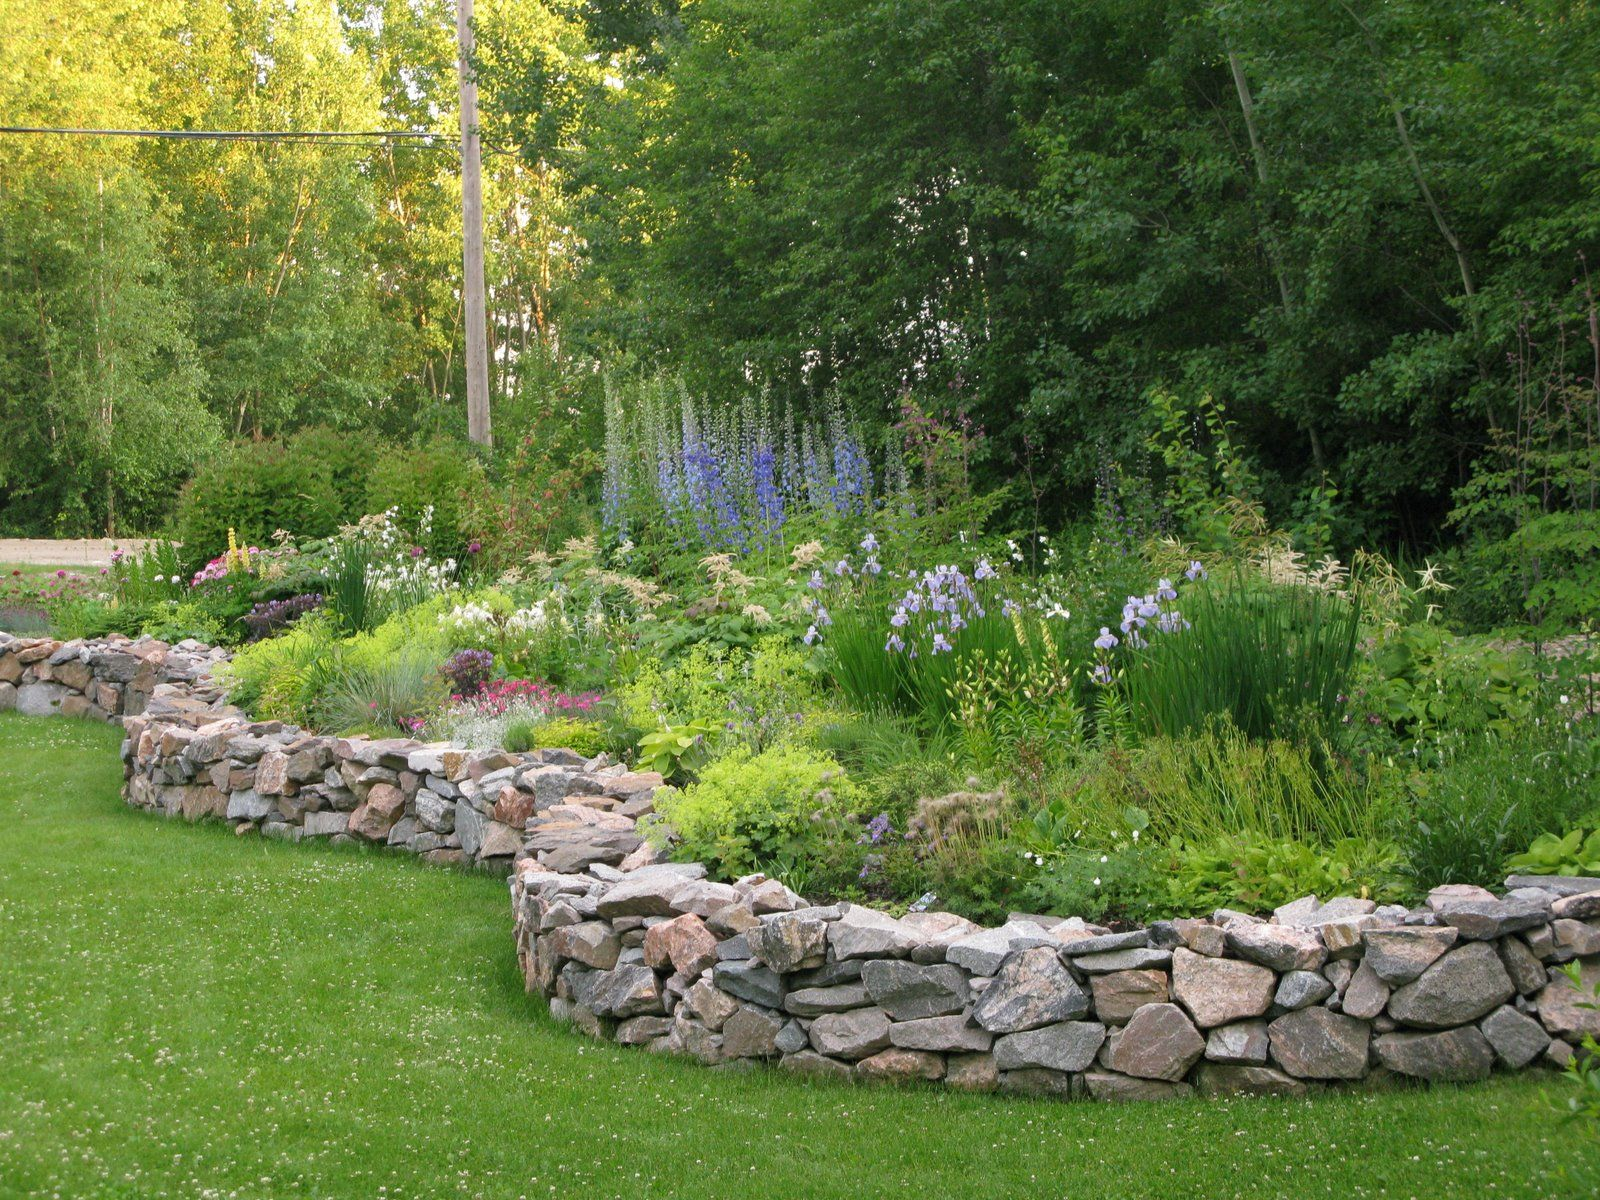 Northern exposure gardening july 2009 landscape borders for Rock garden bed ideas